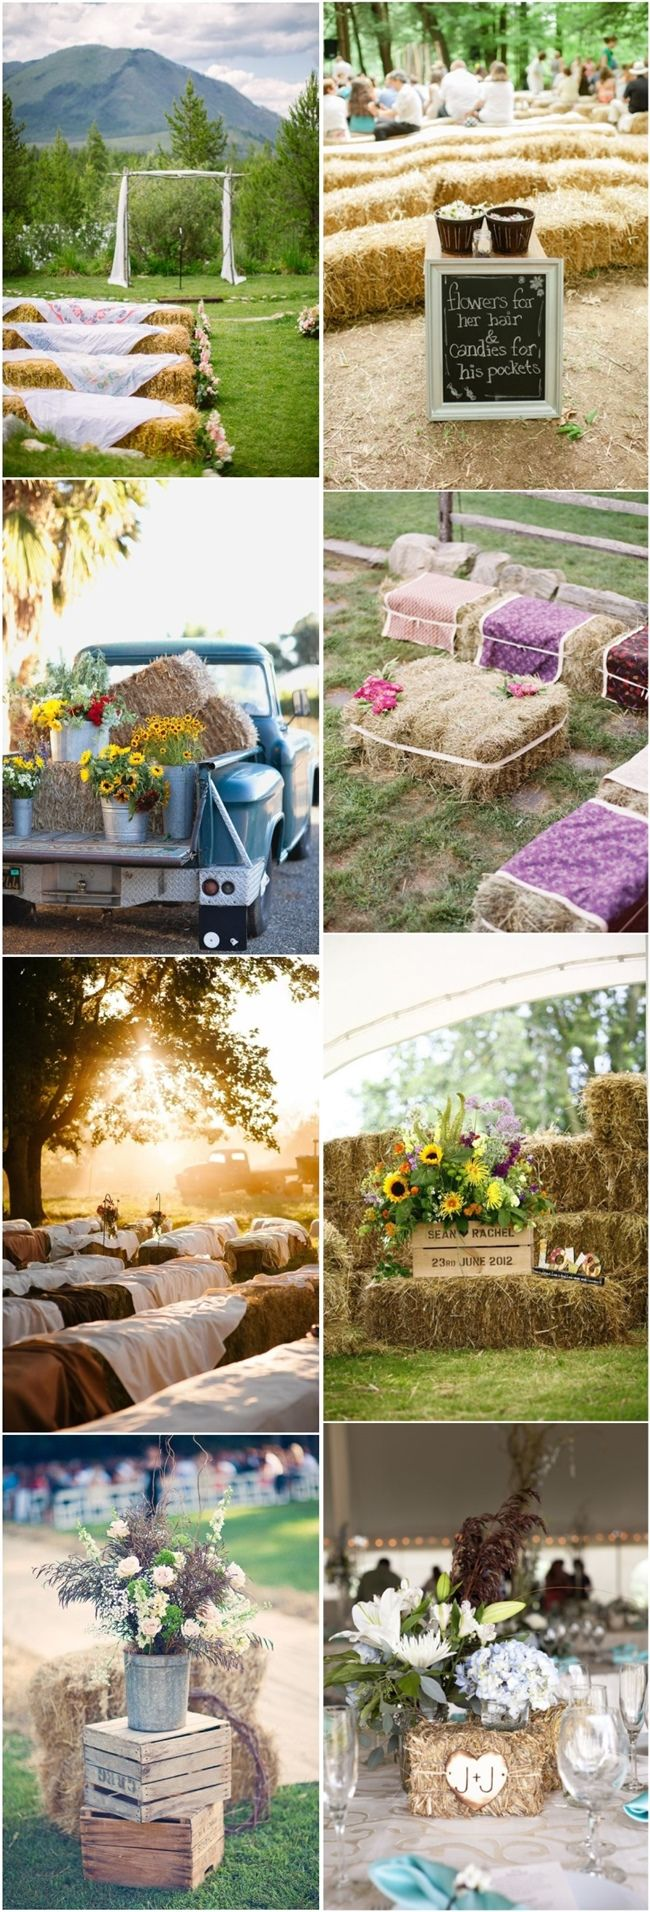 rustic country wedding ideas- hay bales wedding decors - Deer Pearl Flowers